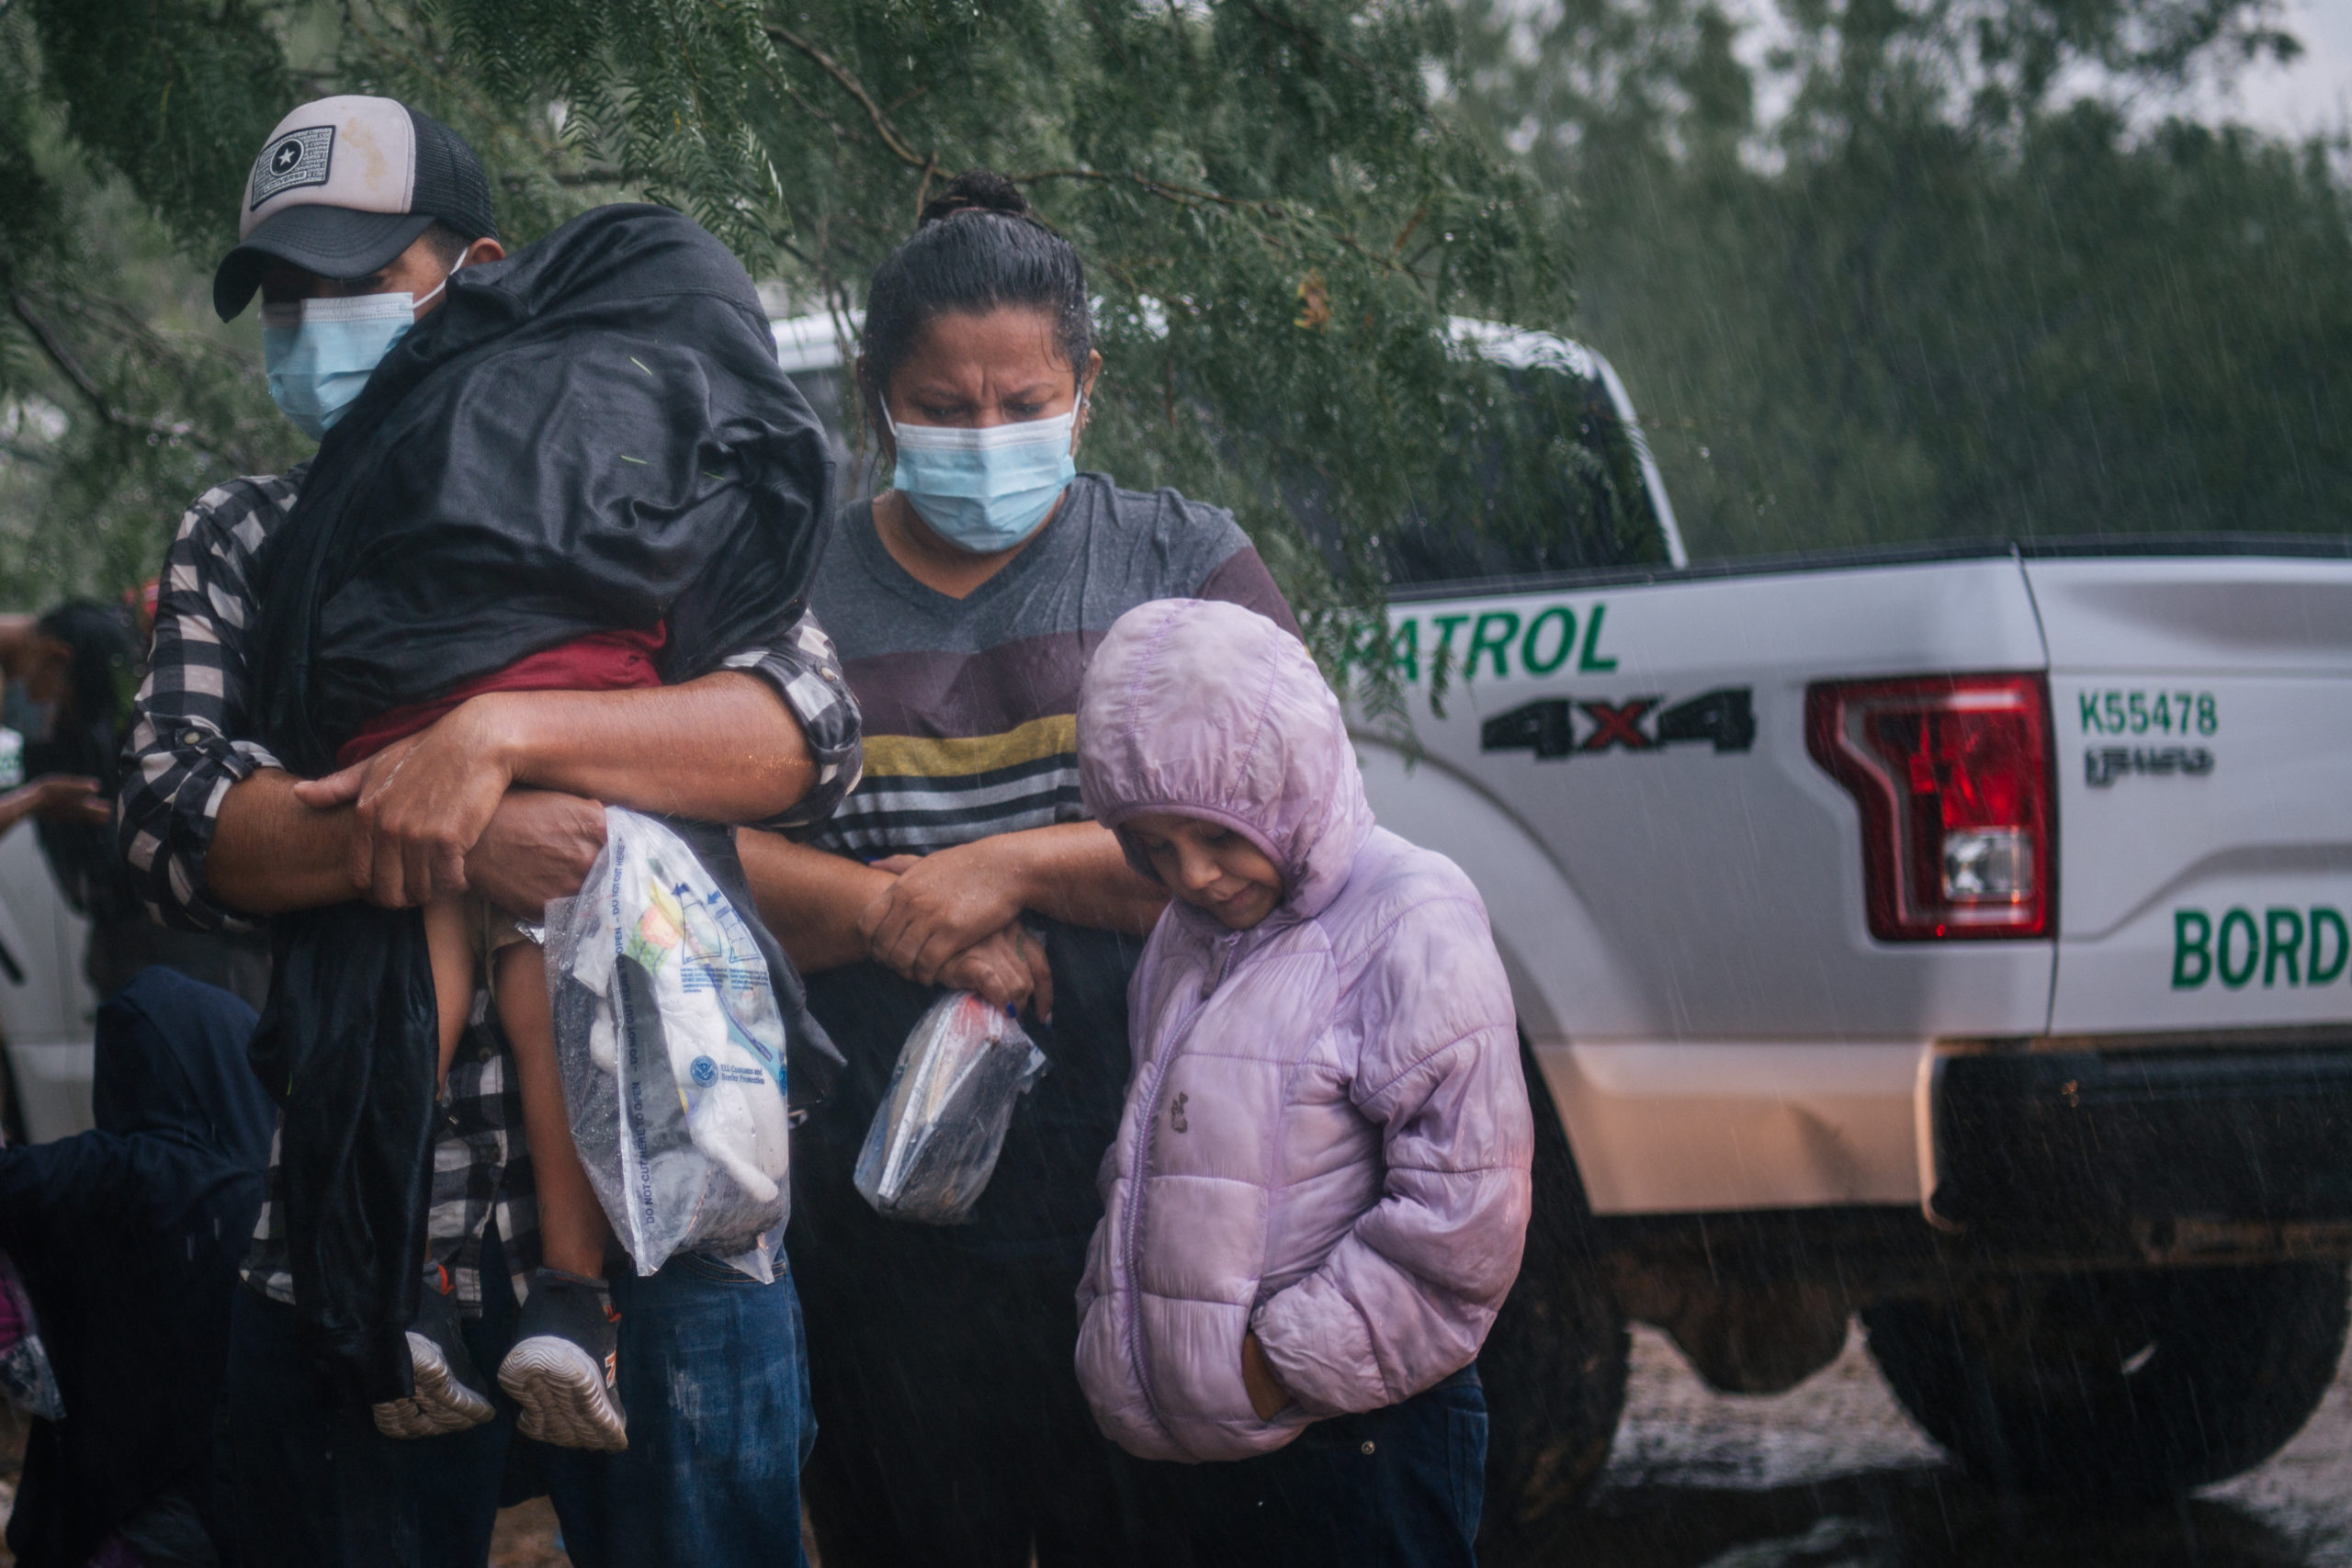 An immigrants family seeking asylum prepares to be taken to a border patrol processing facility after crossing into the U.S. on June 16, 2021 in LaJoya, Texas. (Photo by Brandon Bell/Getty Images)